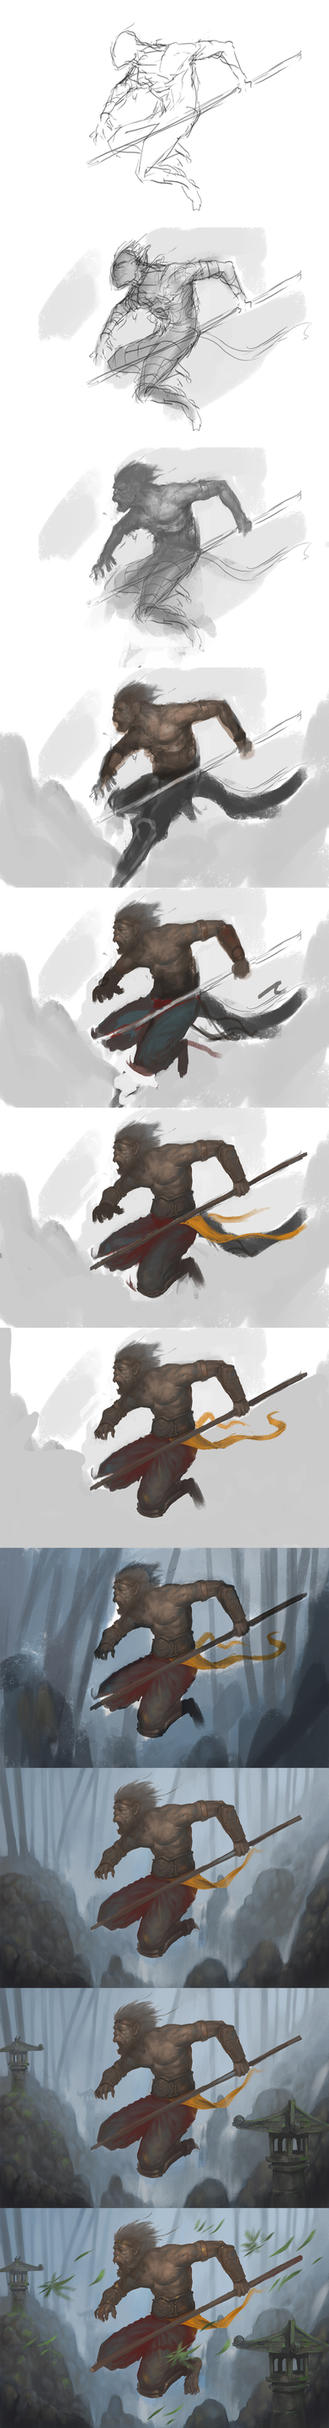 Monkey King Step By Step by Asahisuperdry